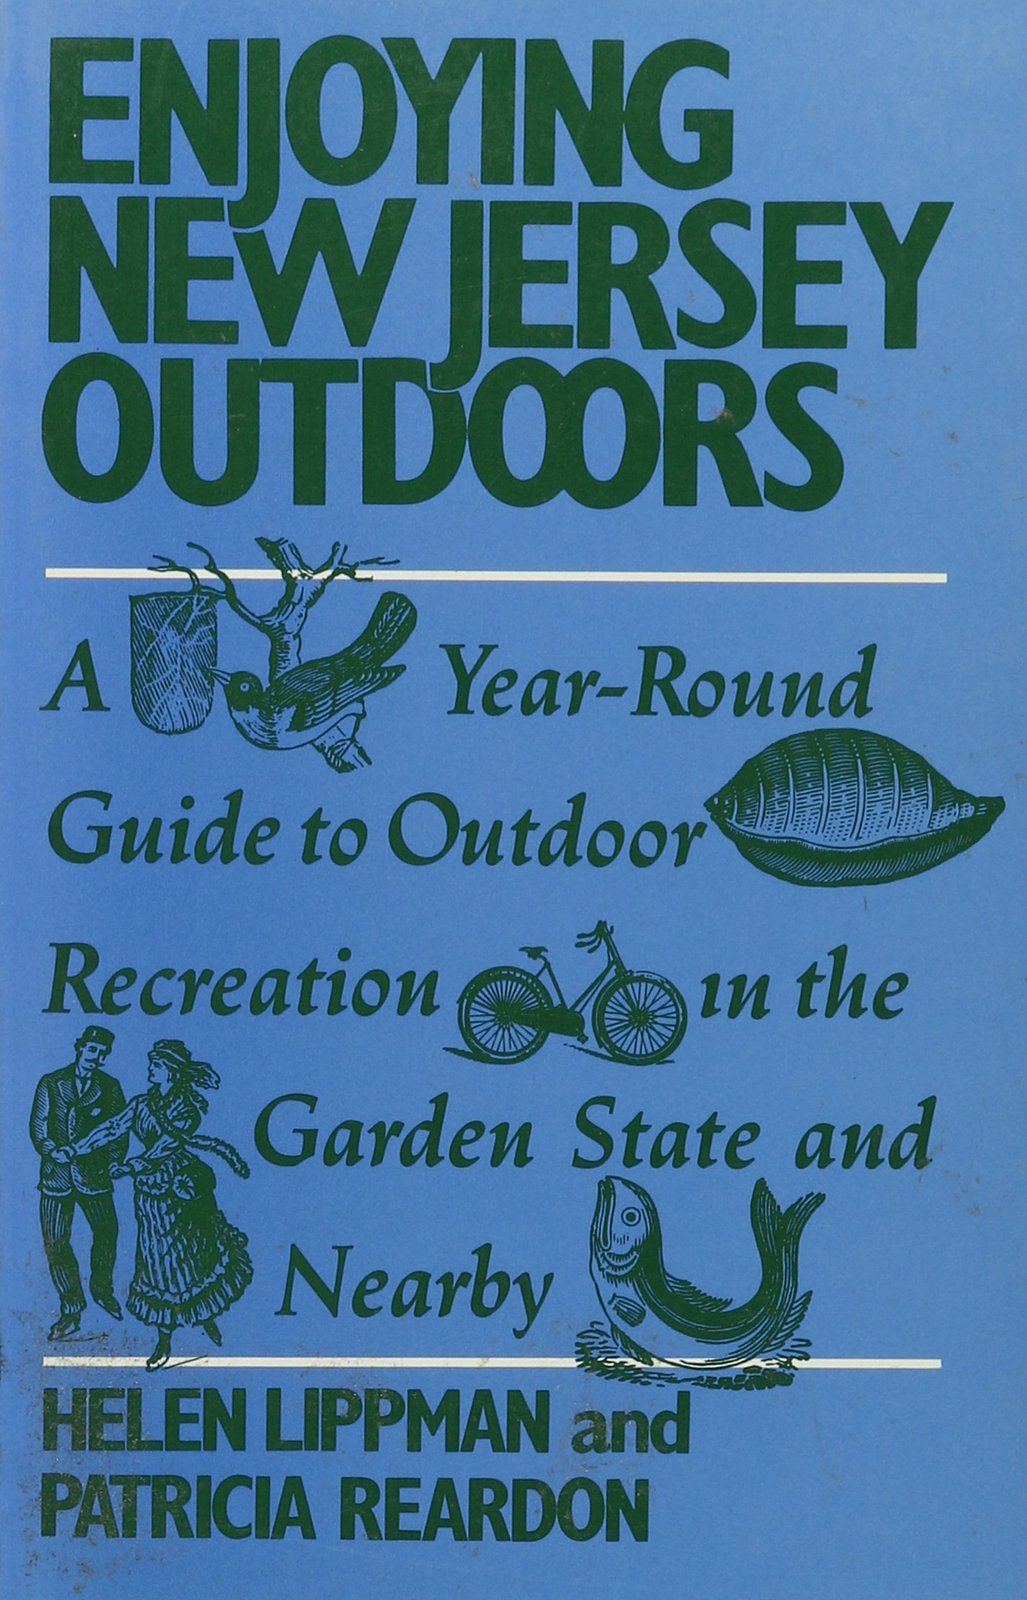 Enjoying New Jersey Outdoors: A Year-Round Guide to Outdoor Recreation in the...